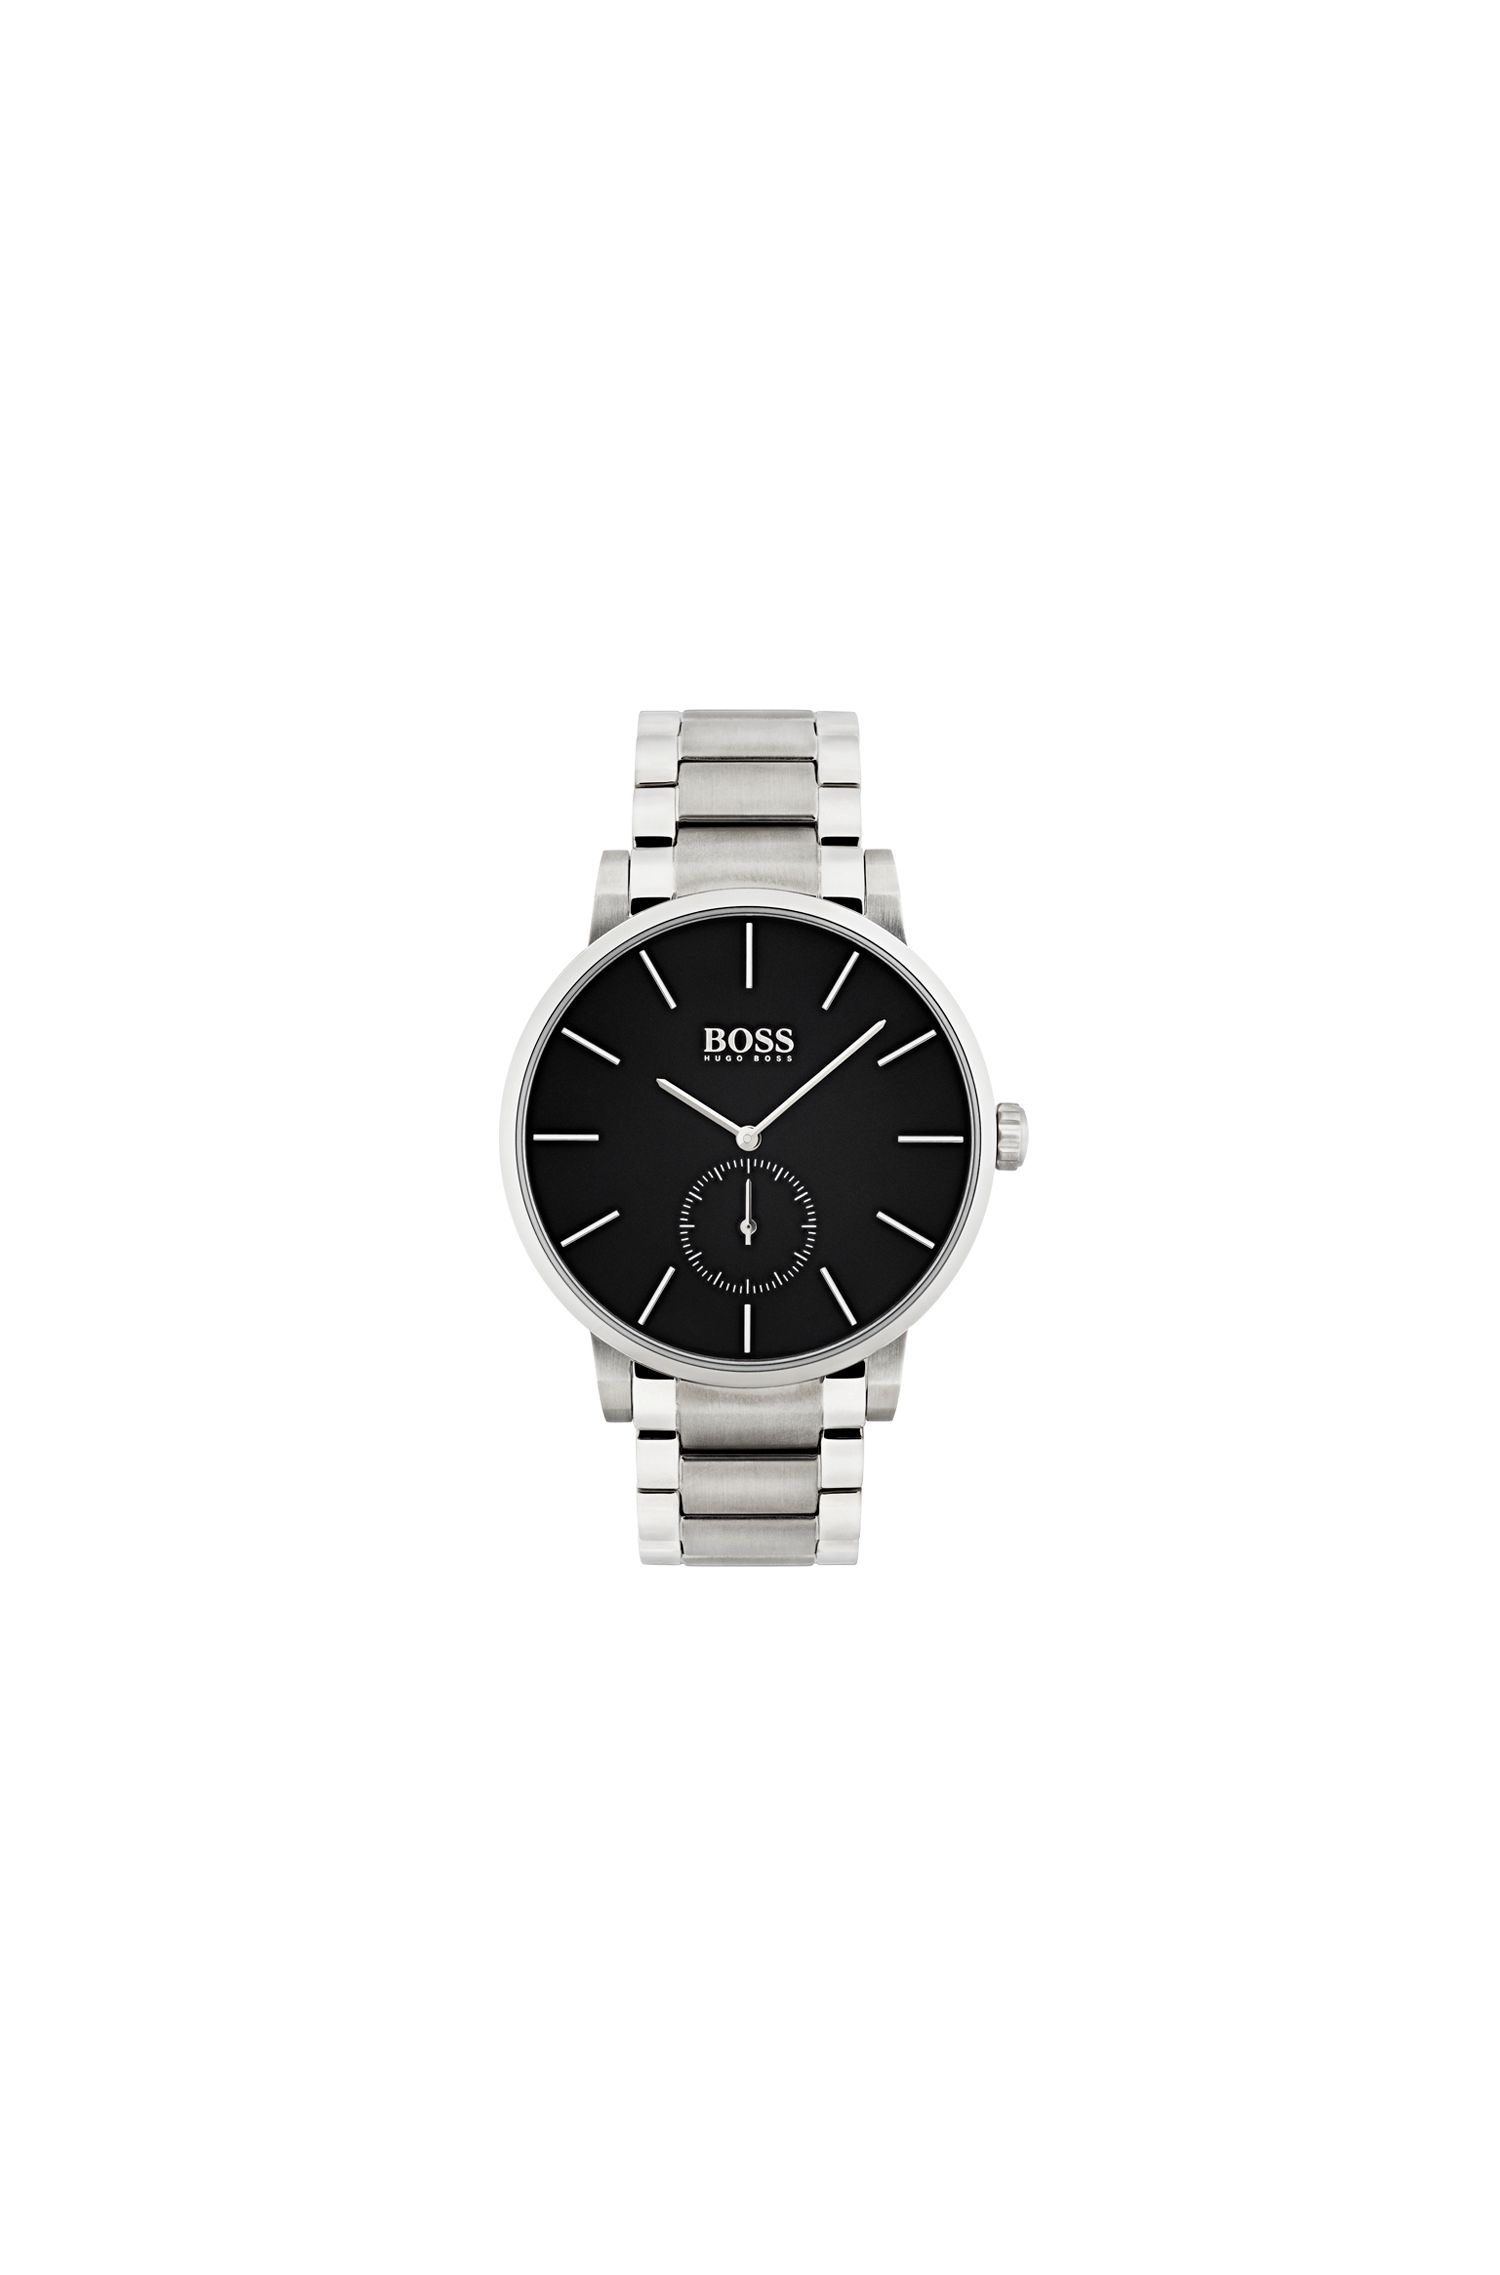 Stainless-steel watch and bracelet with black dial